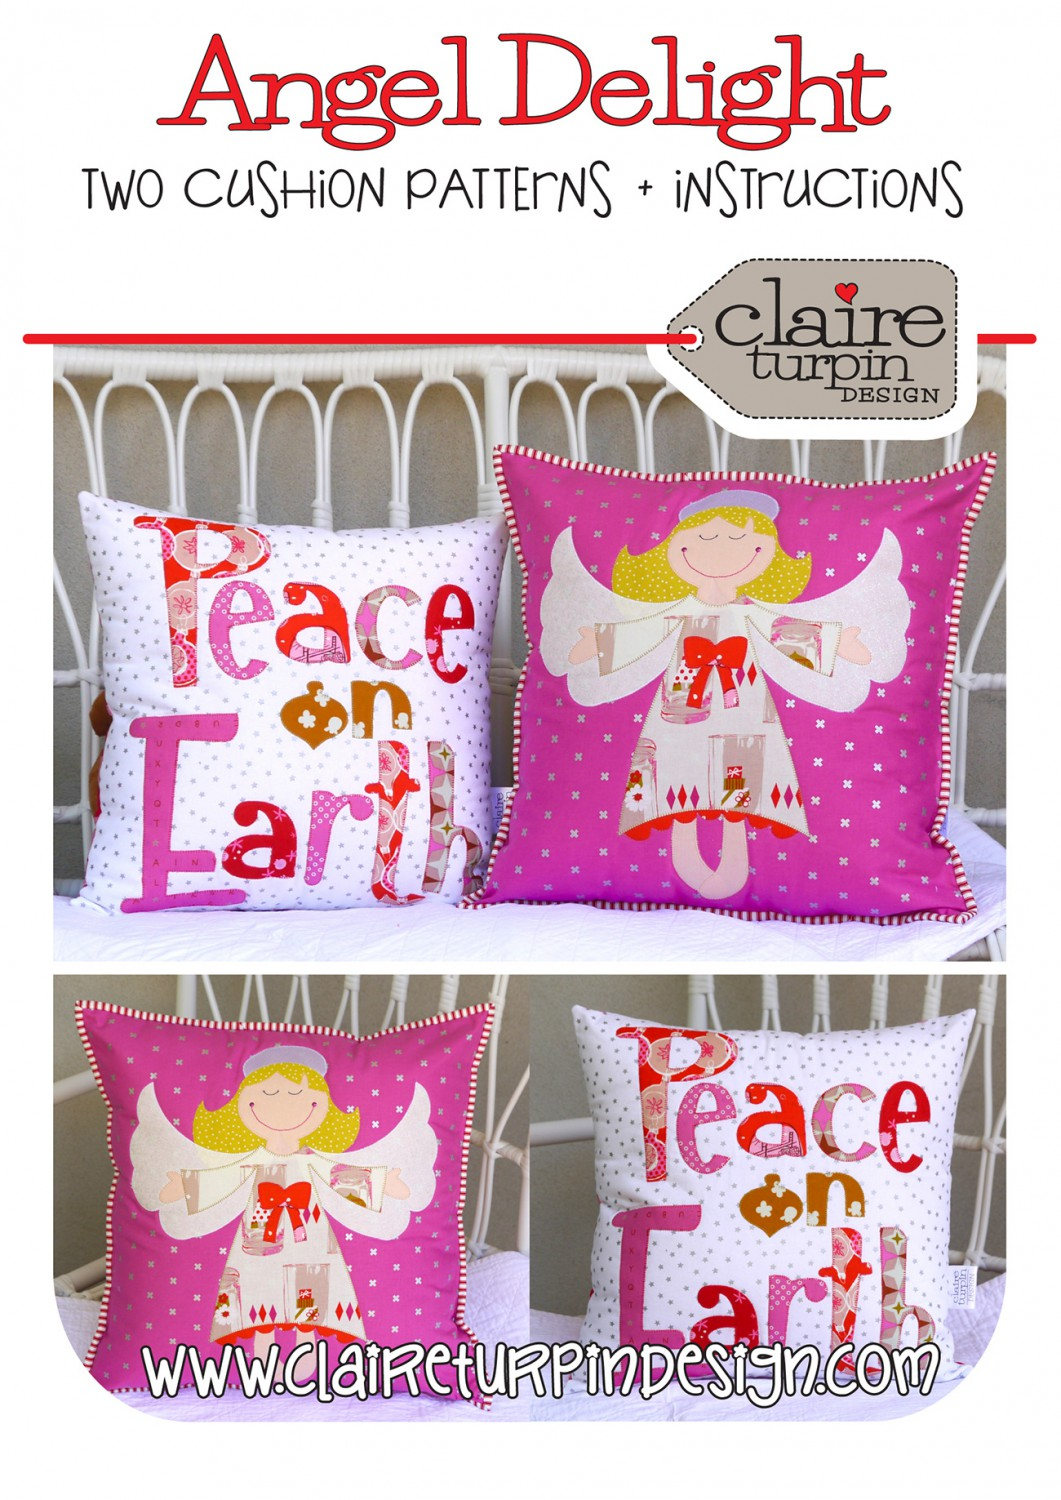 Angel Delight Quilted Pillow Patterns